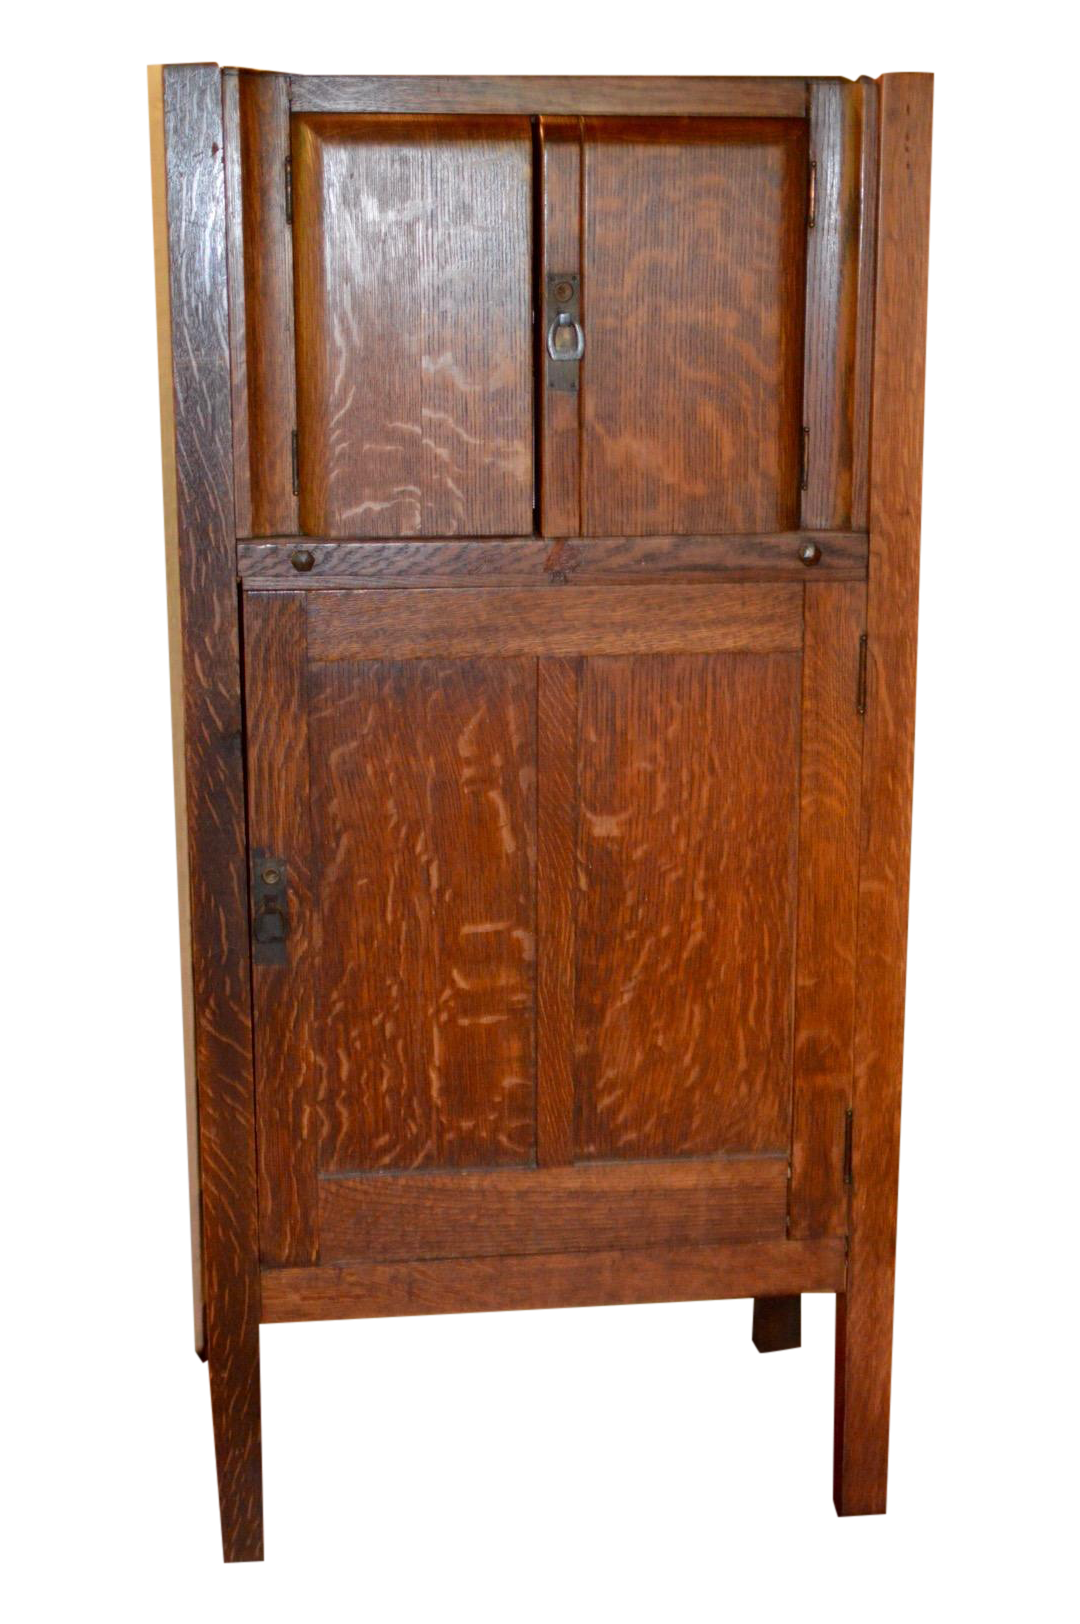 Superieur This Is A Circa 1925 Mission Oak Prohibition Era Liquor Cabinet With  Locking Door. Maker